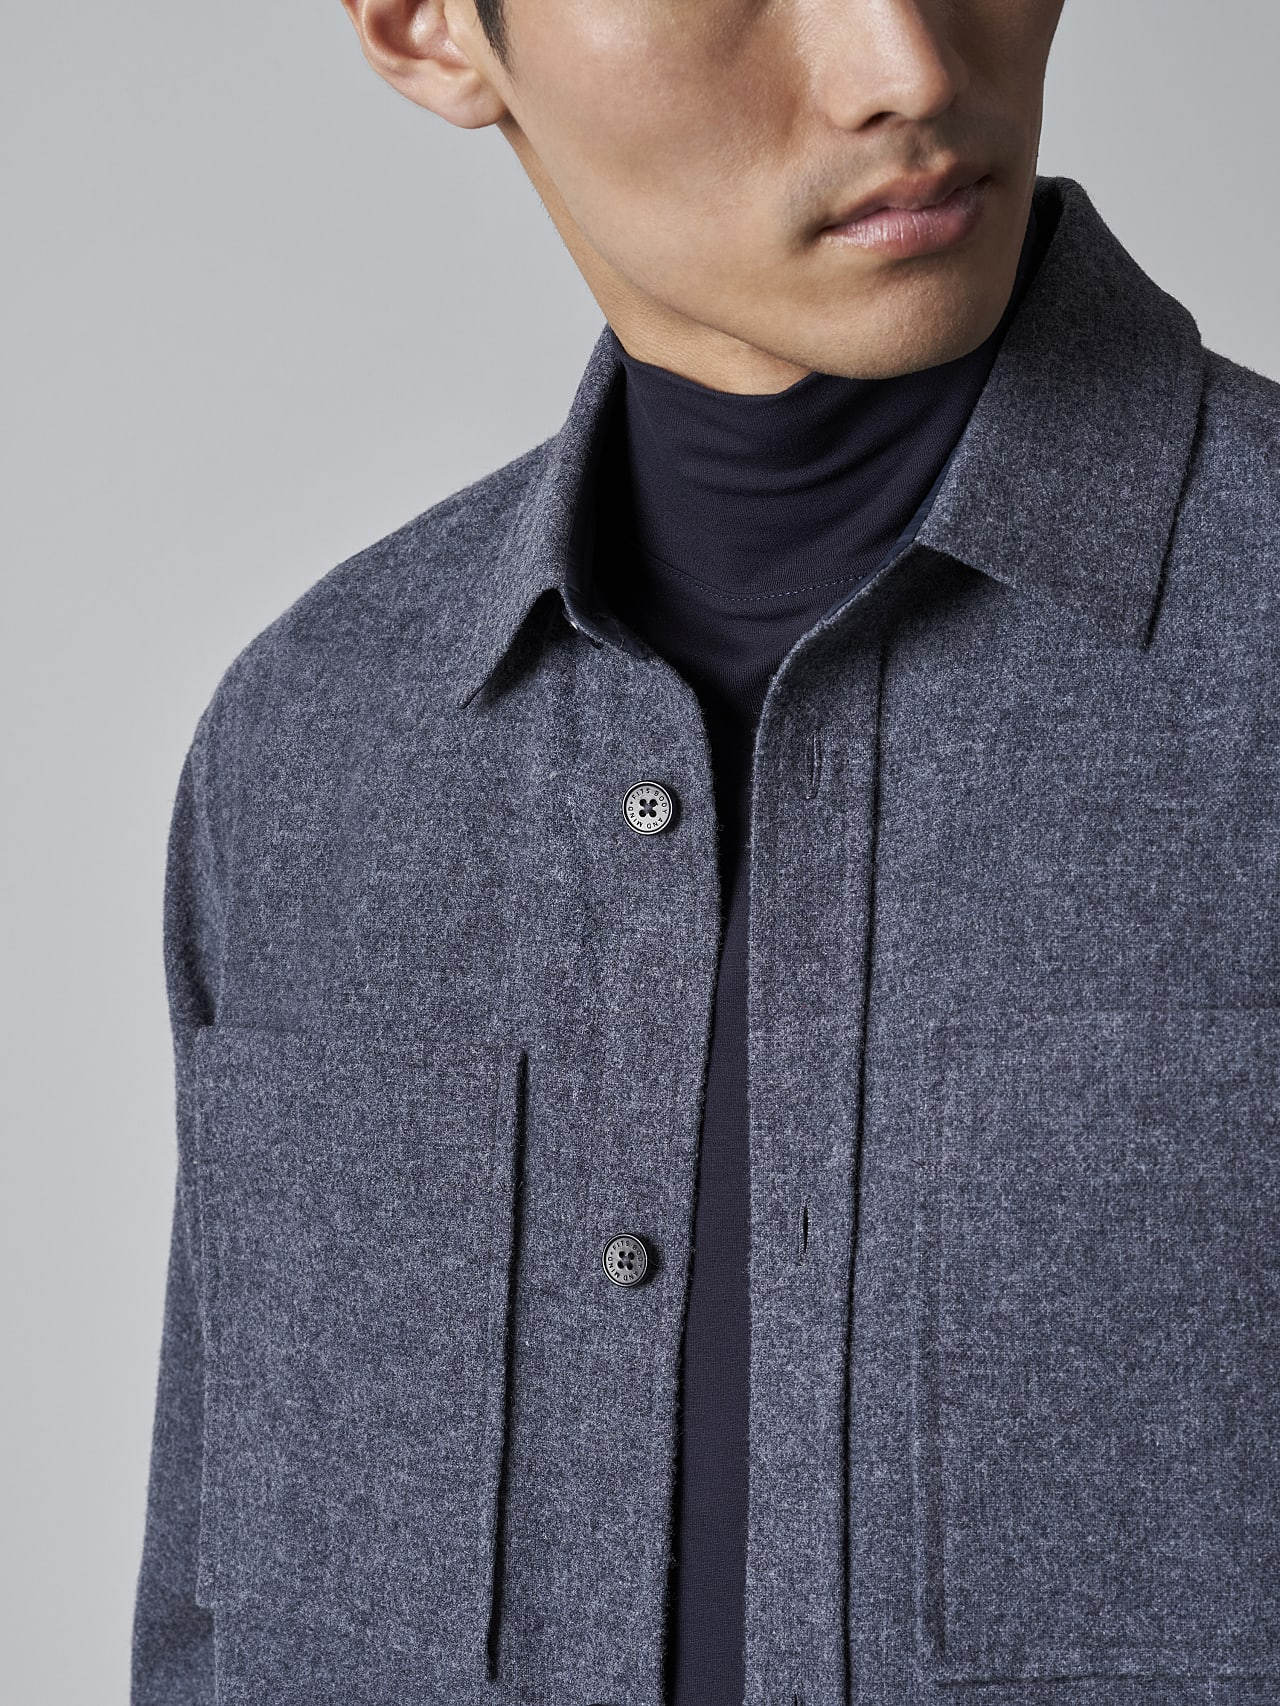 WOVER V1.Y5.02 Wool Over-Shirt navy Right Alpha Tauri